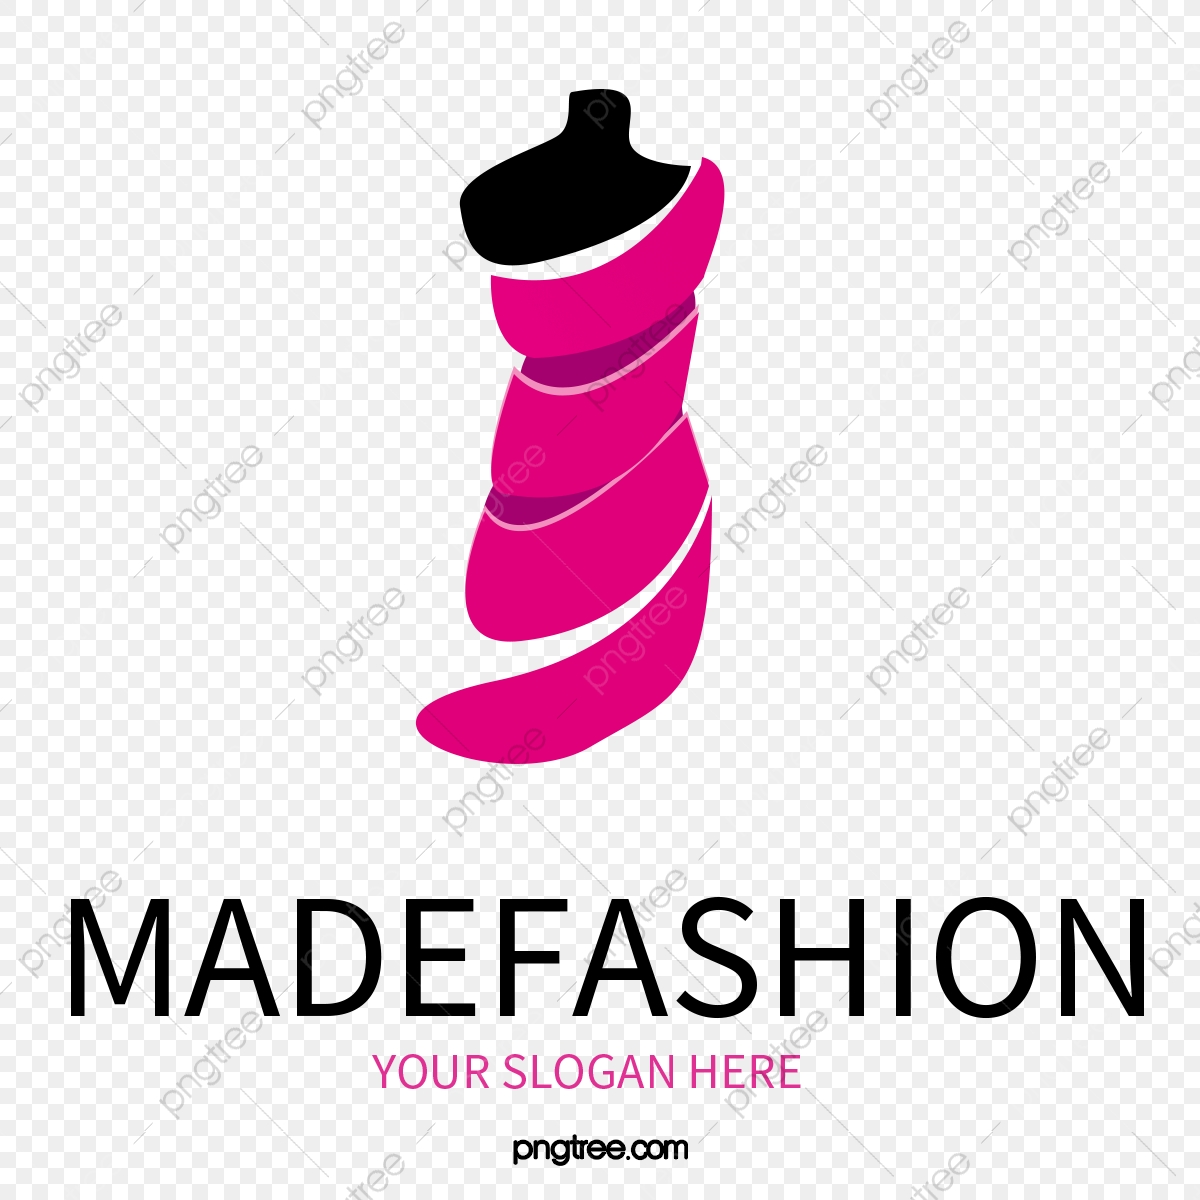 Exquisite Fashion Logo Vector Material Fine Female Fashion Png Transparent Clipart Image And Psd File For Free Download